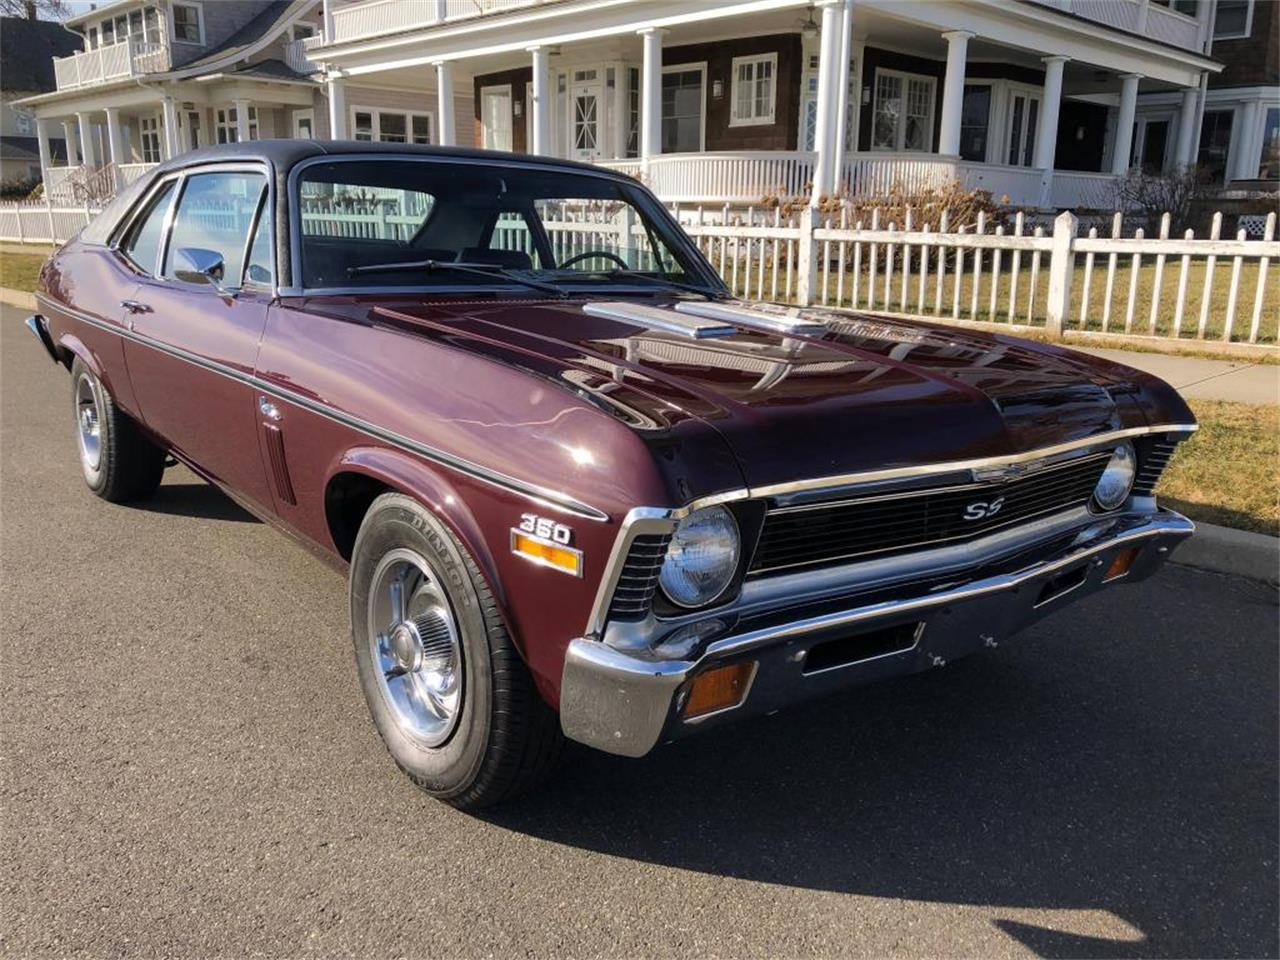 1971 Chevrolet Nova for sale in Milford City, CT – photo 4